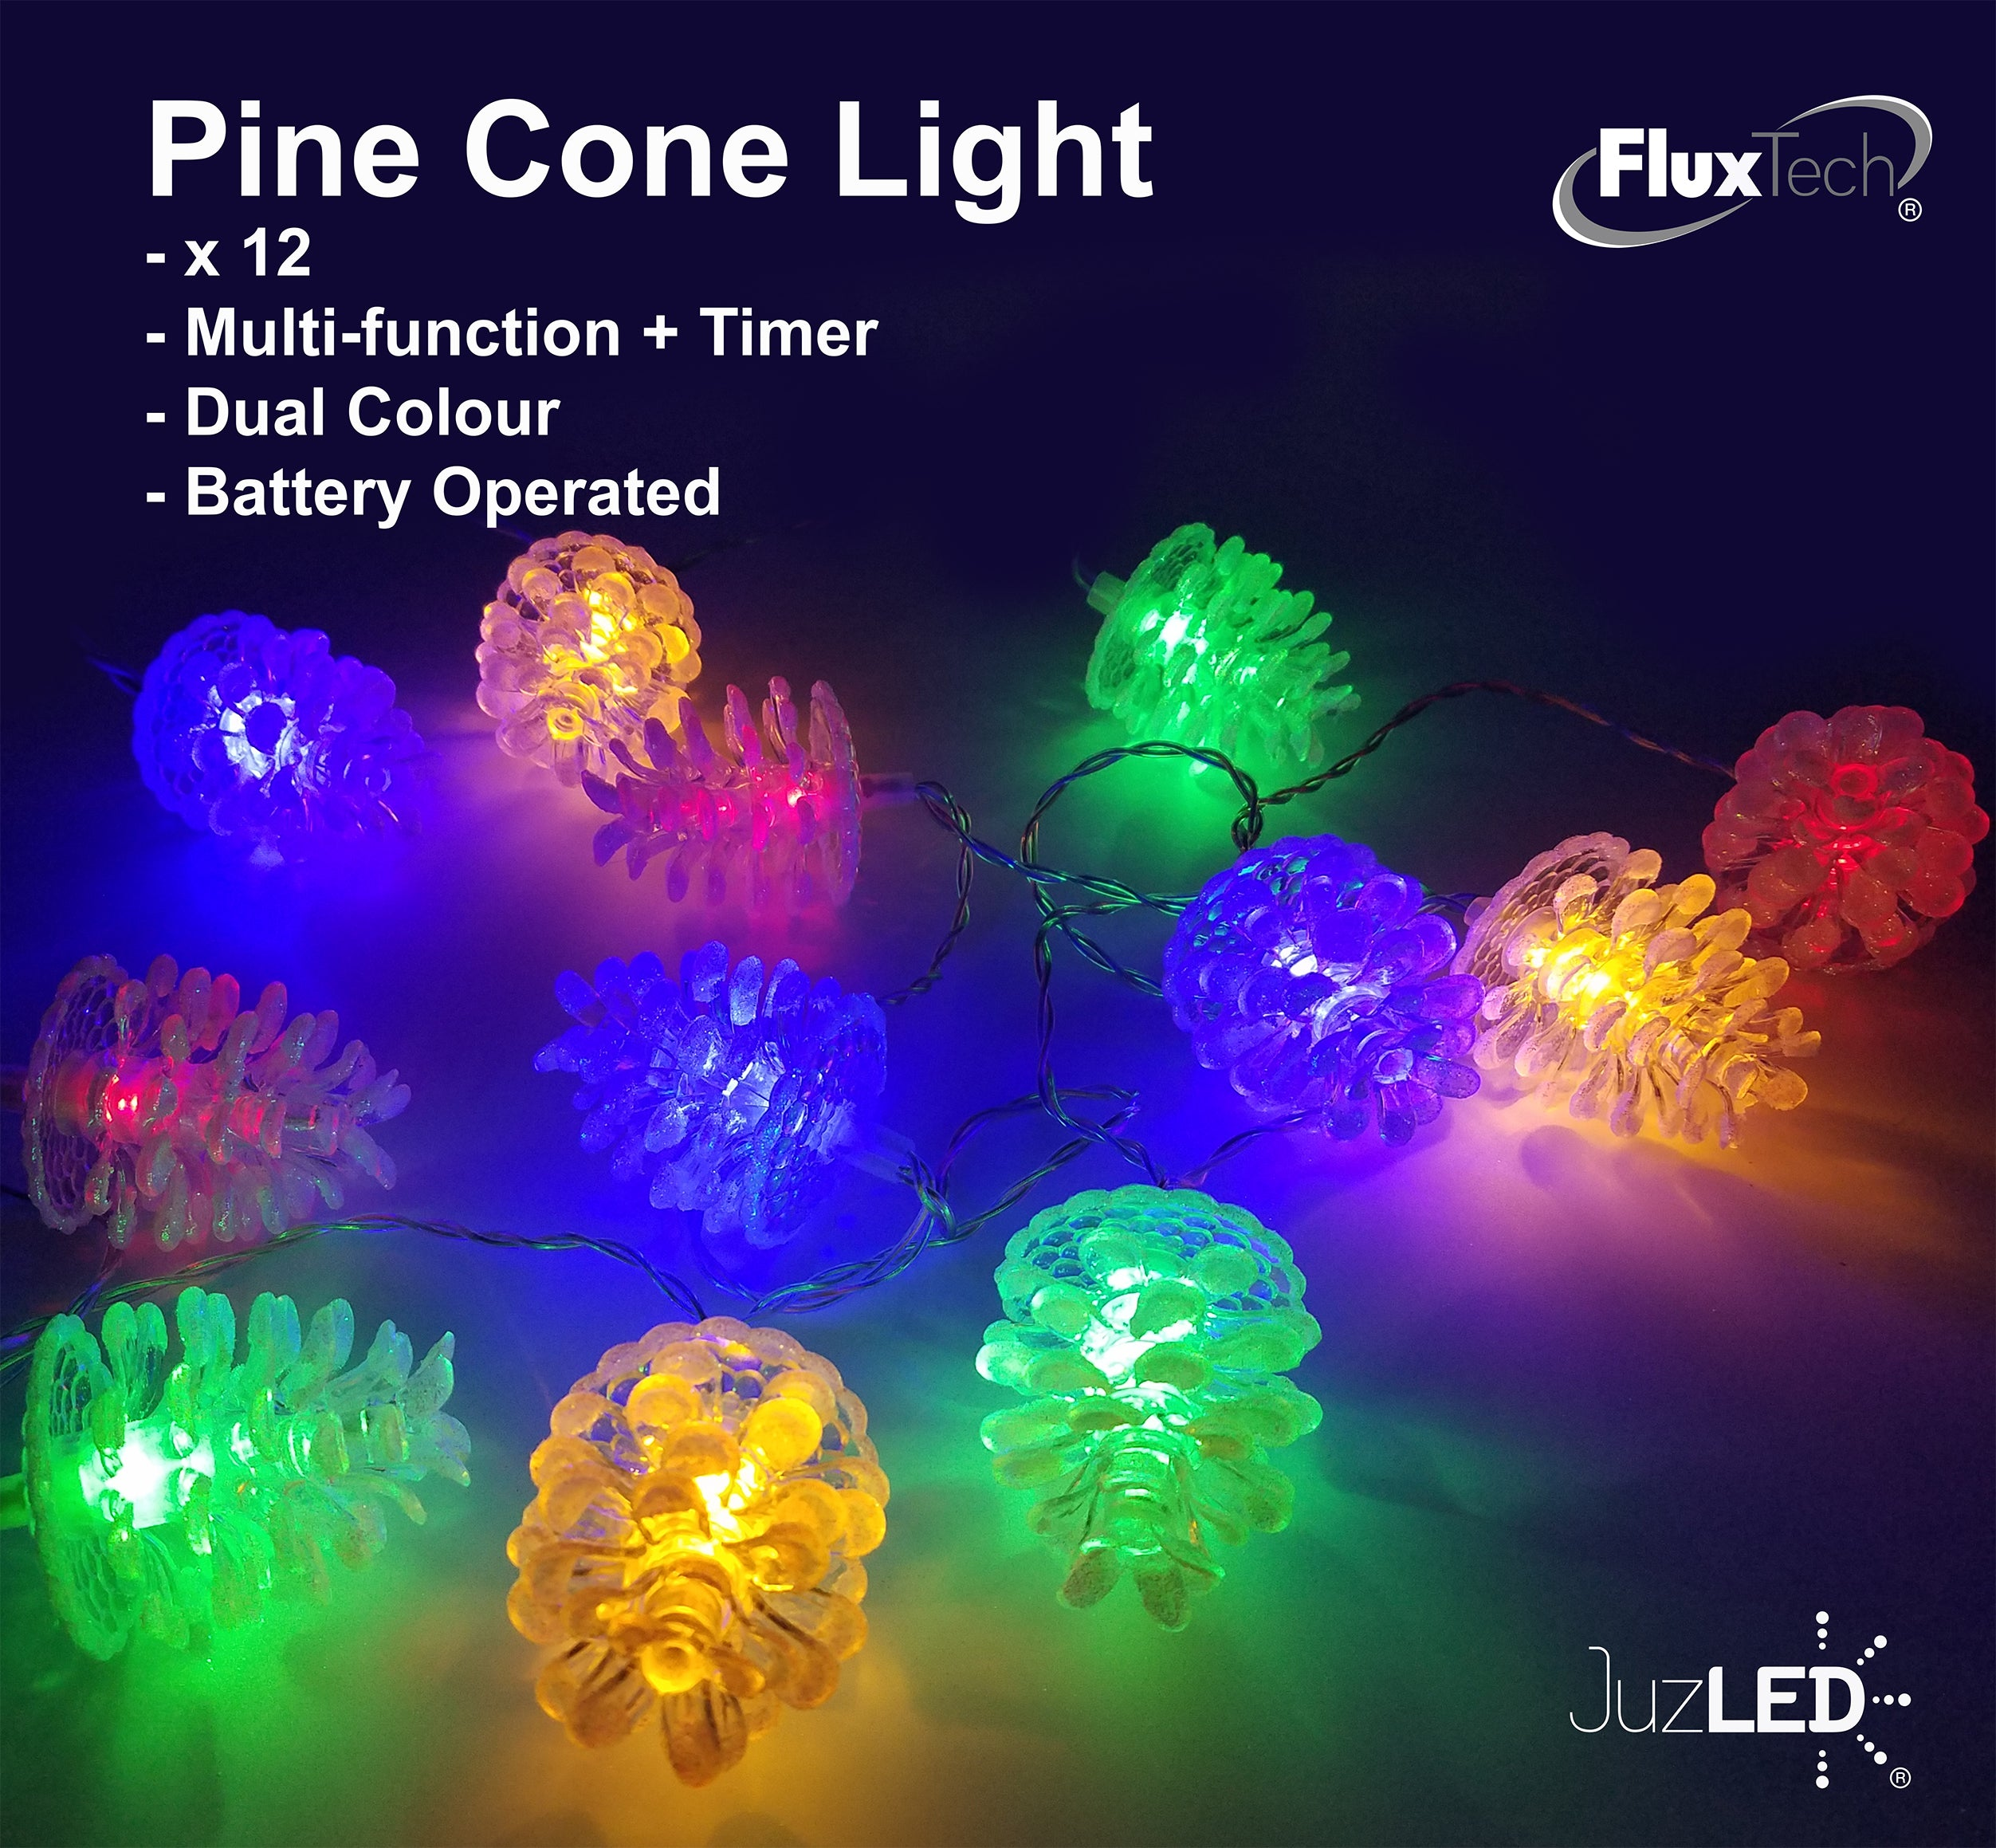 FluxTech - Sparkling Pine Cone 12 x Dual Colour LED String Lights by JustLED – Multi-function Effect – Timer function - Battery Operated